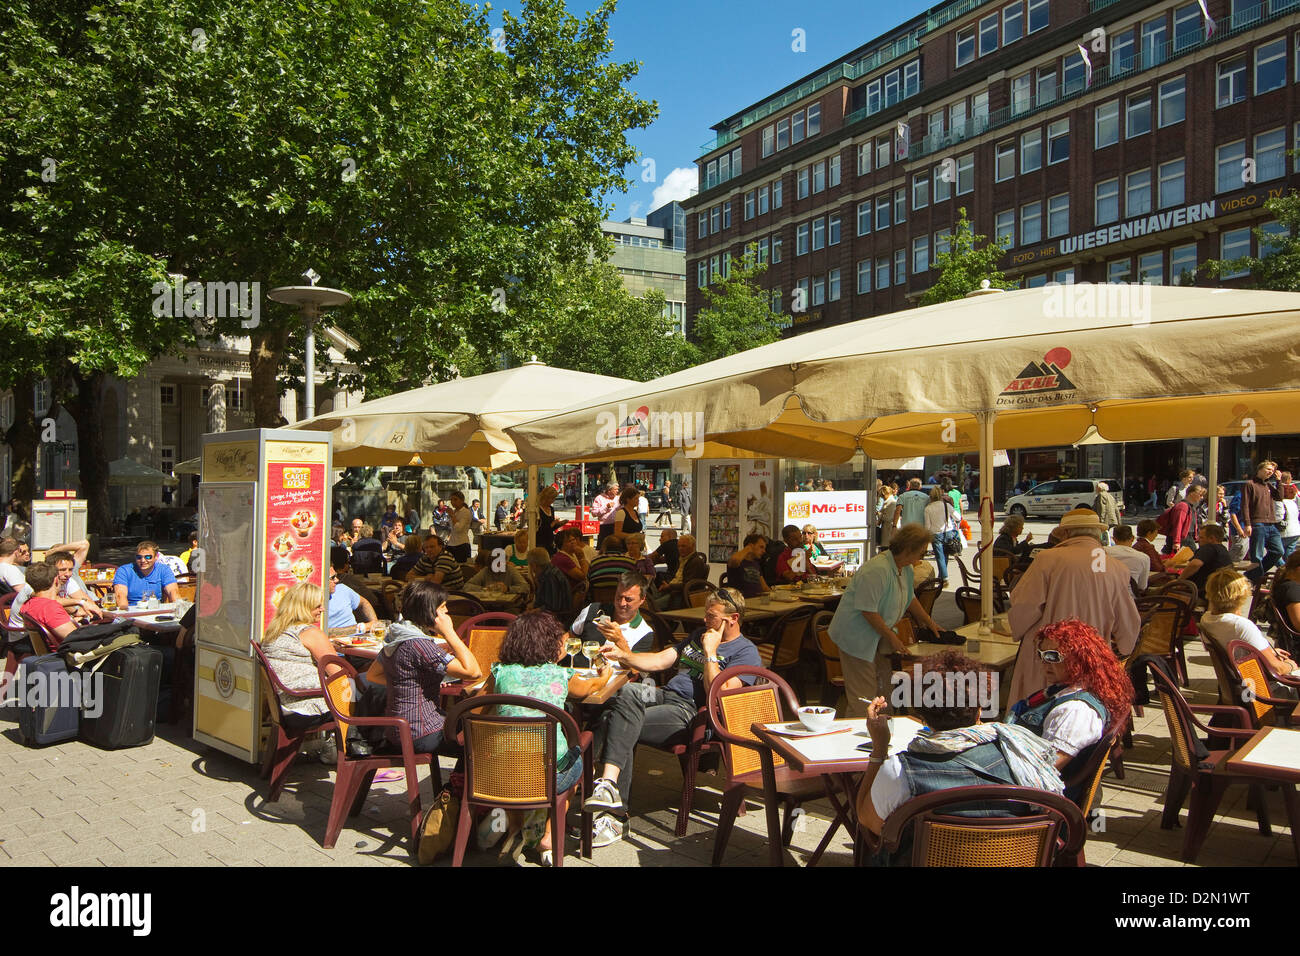 People sitting al fresco at cafe with parasols on Moenckebergstrasse in the shopping heart of the city centre, Hamburg, Stock Photo